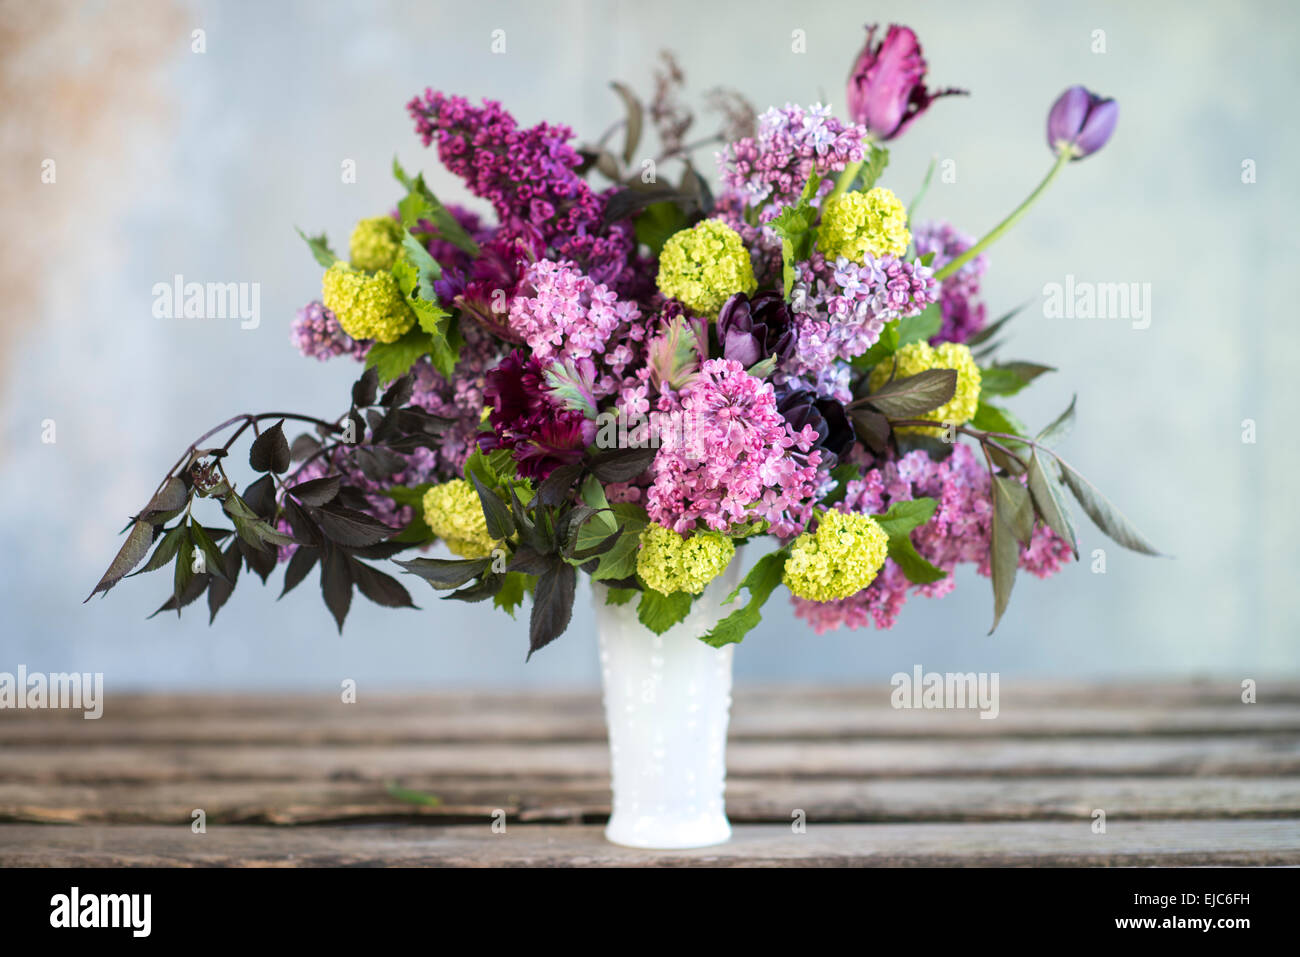 Spring floral bouquet with lilacs, tulips, Snowball bush, hellebore and euphorbia - Stock Image